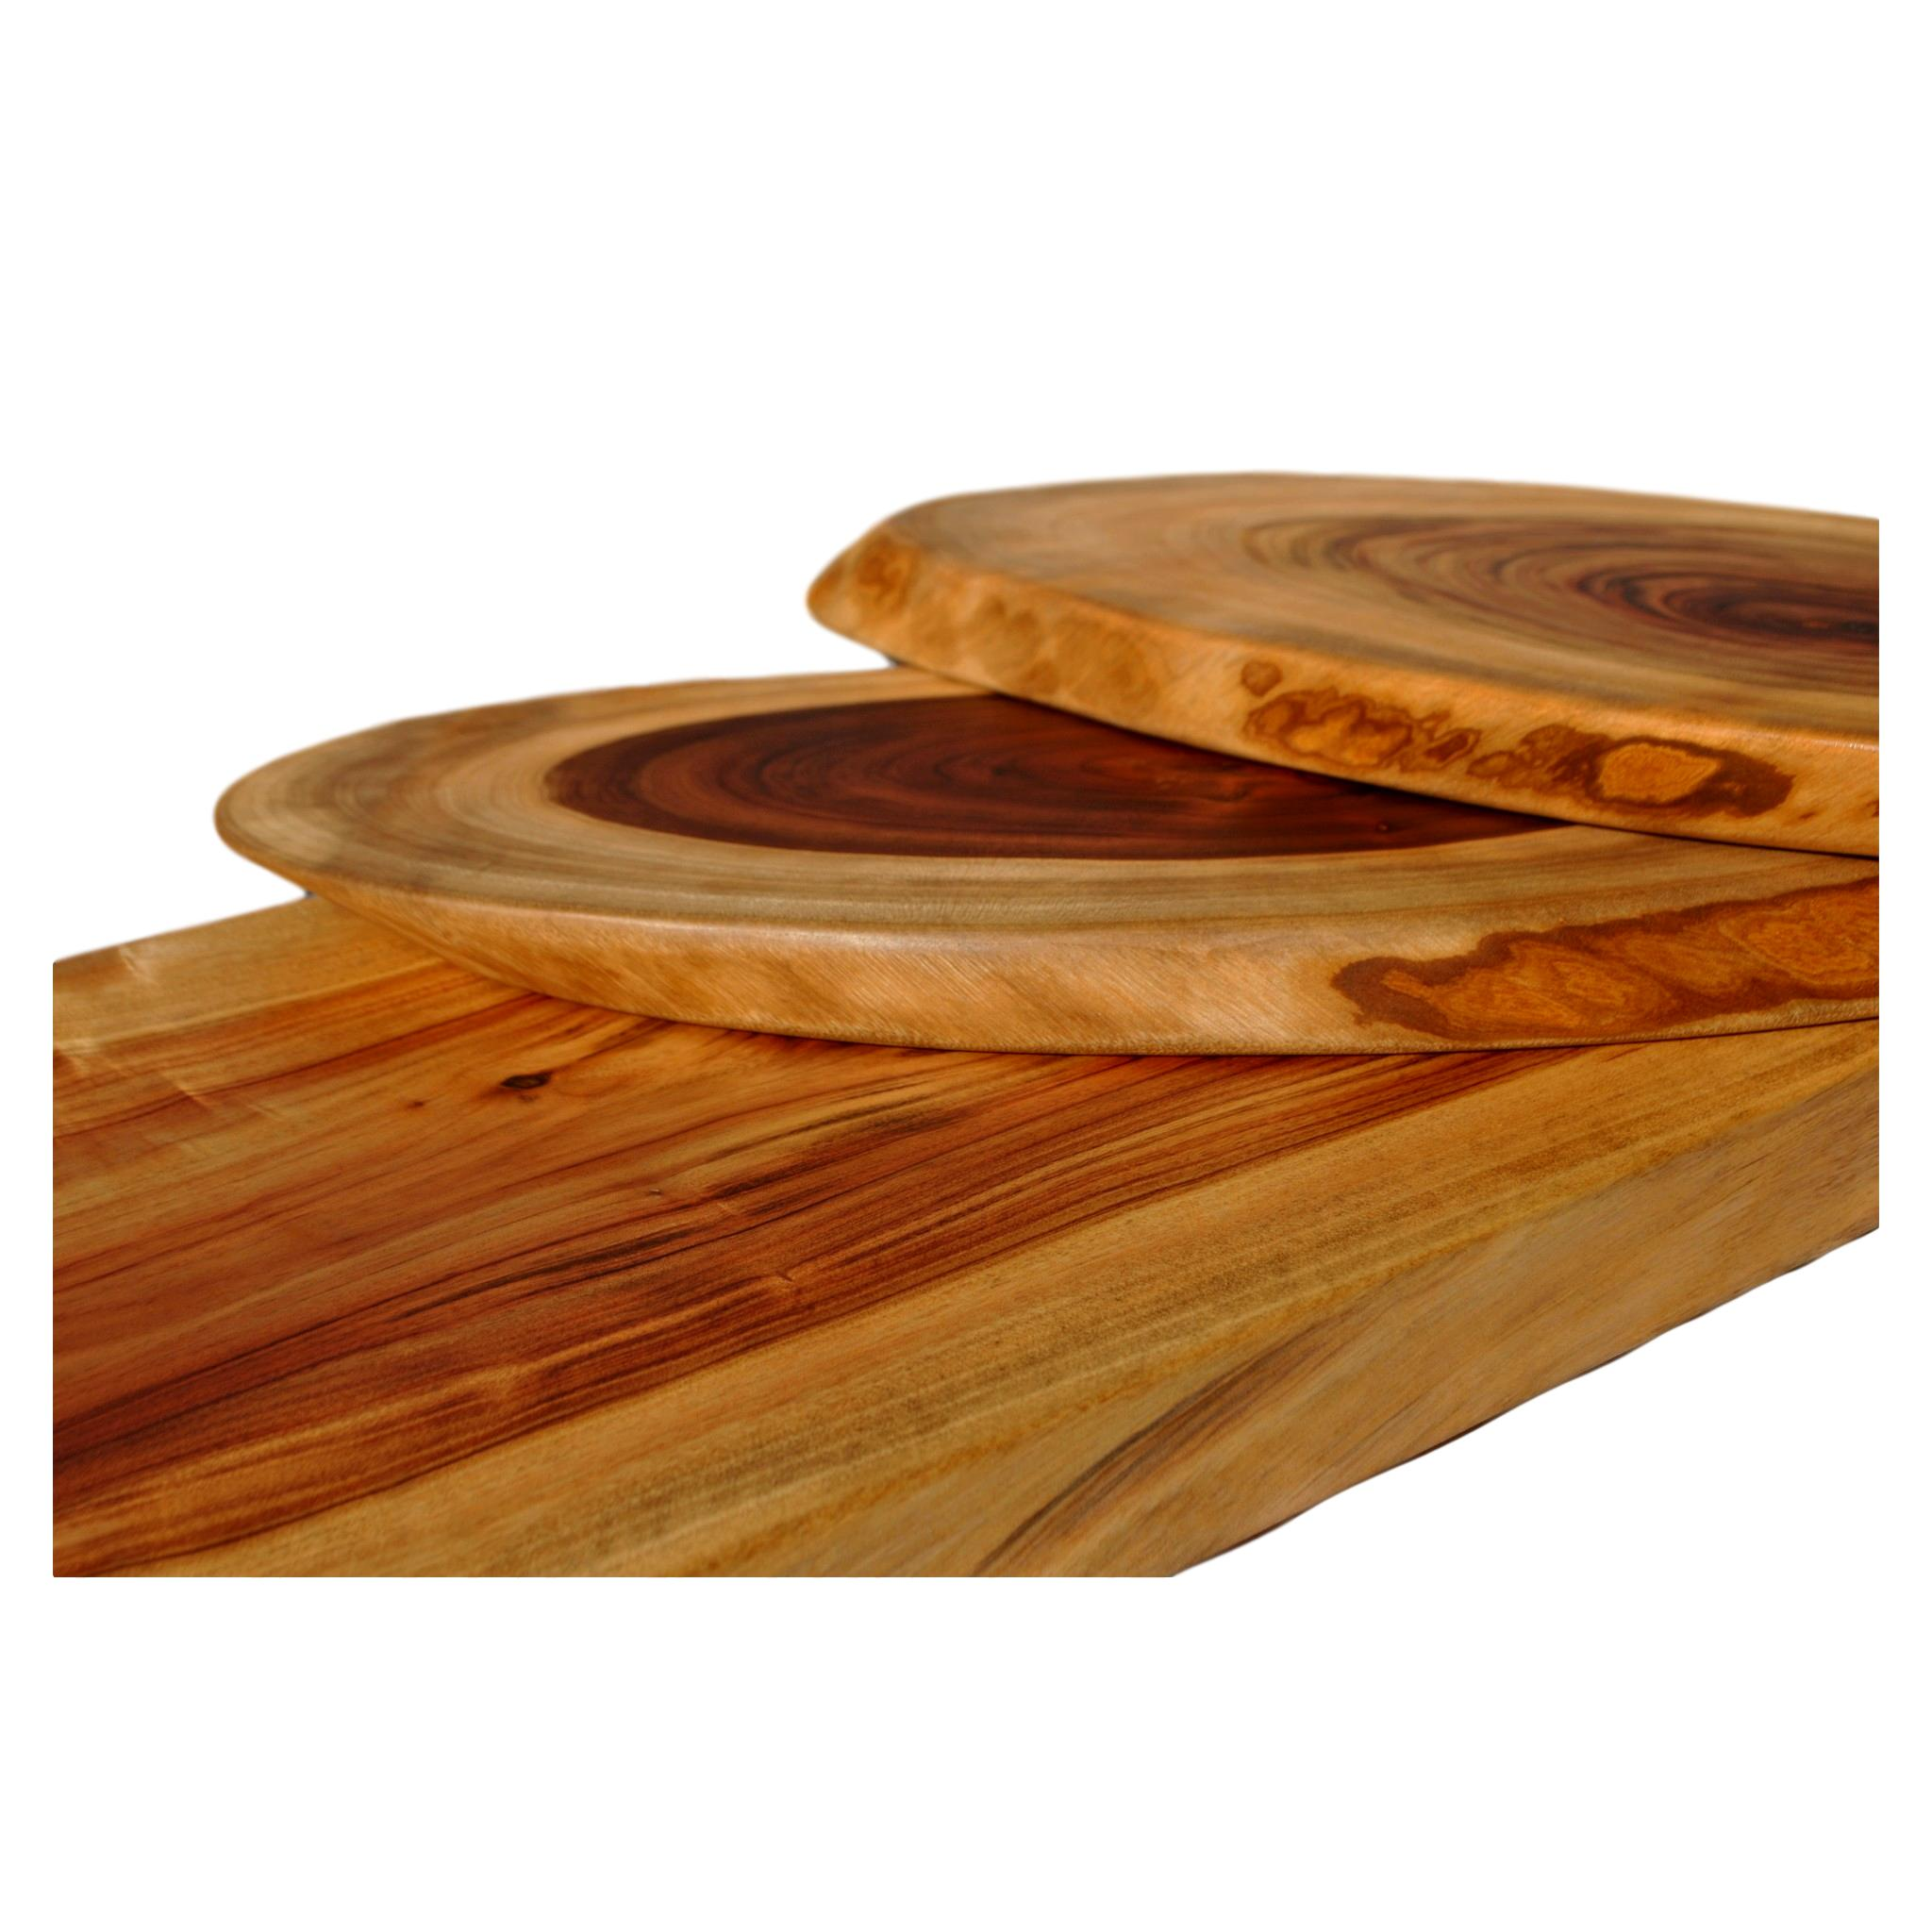 extra large wooden chopping boards natural shape handmade in australia